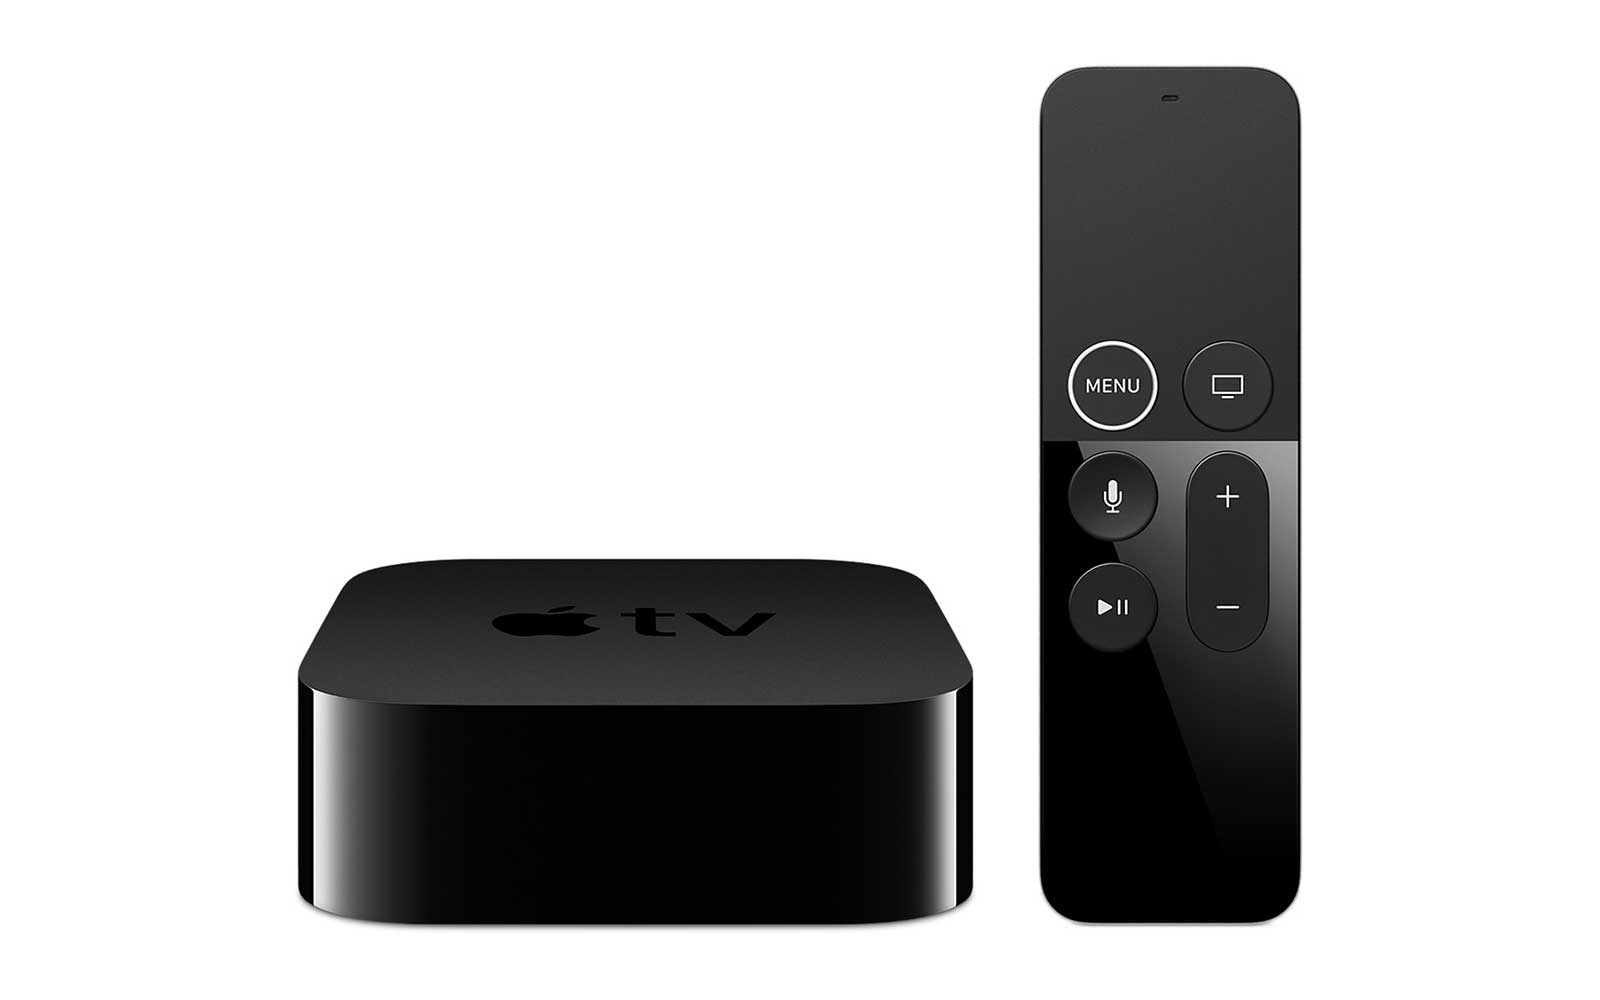 Apple TV 4K set